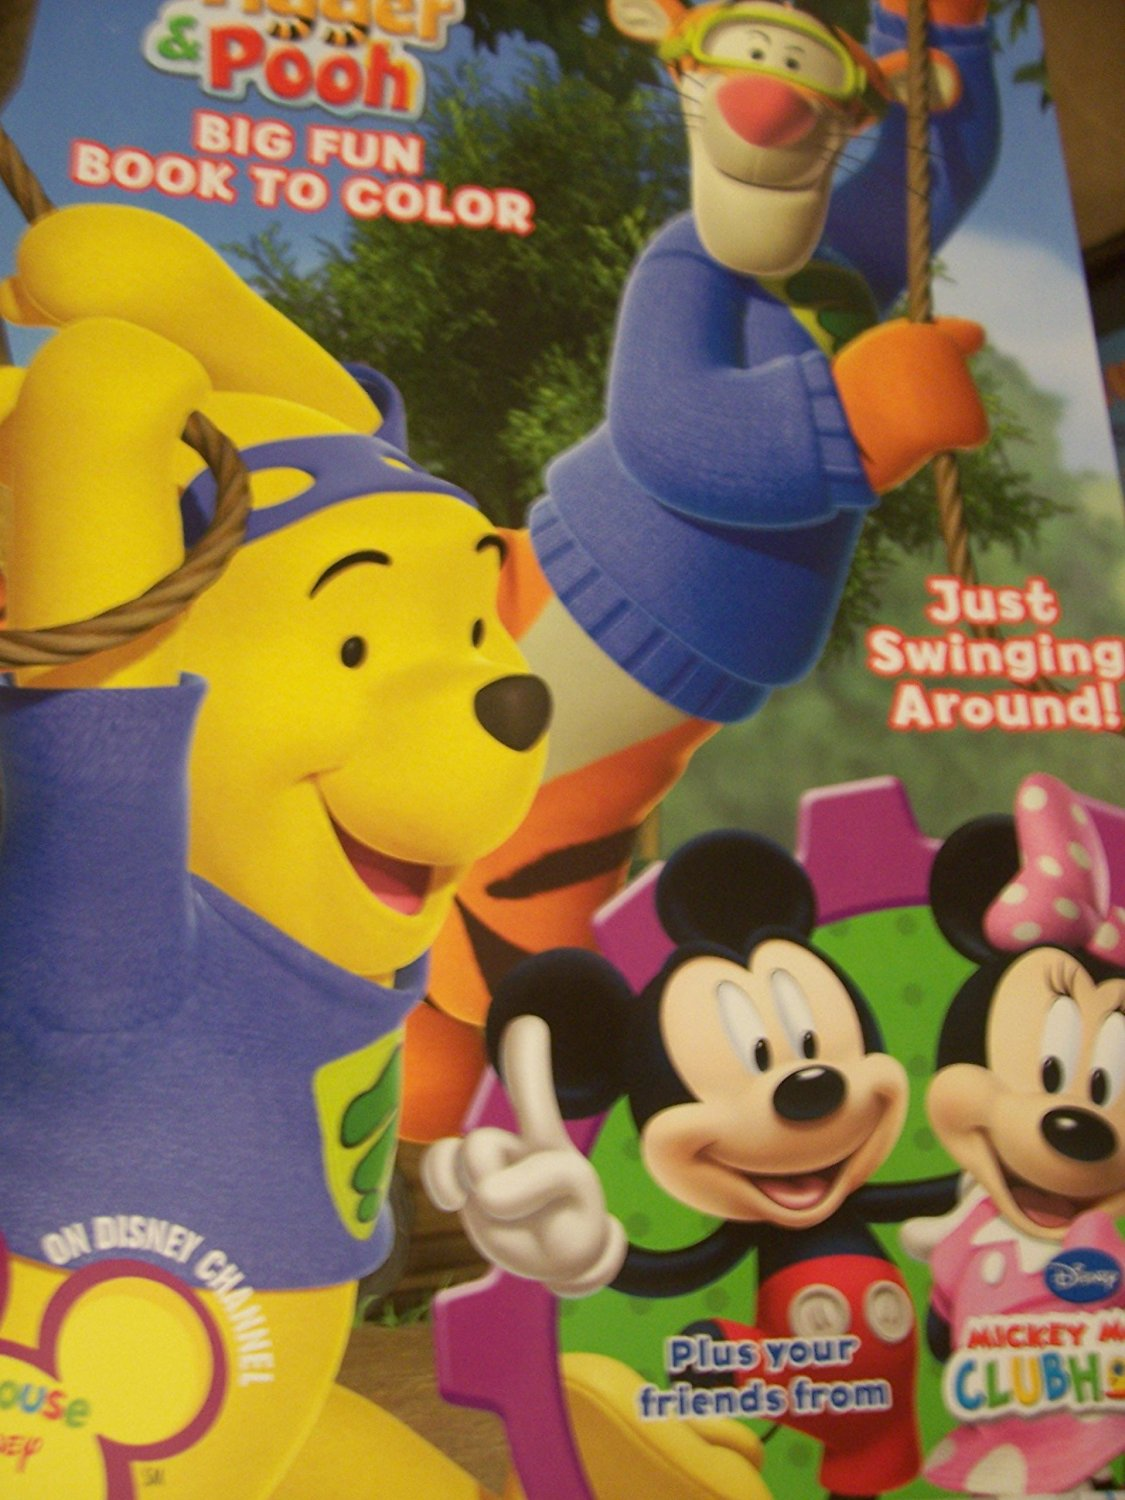 Disney Dual Book featuring My Friends Tigger & Pooh Big Fun Book to Color & Mickey Mouse Clubhouse ~ Swinging Around